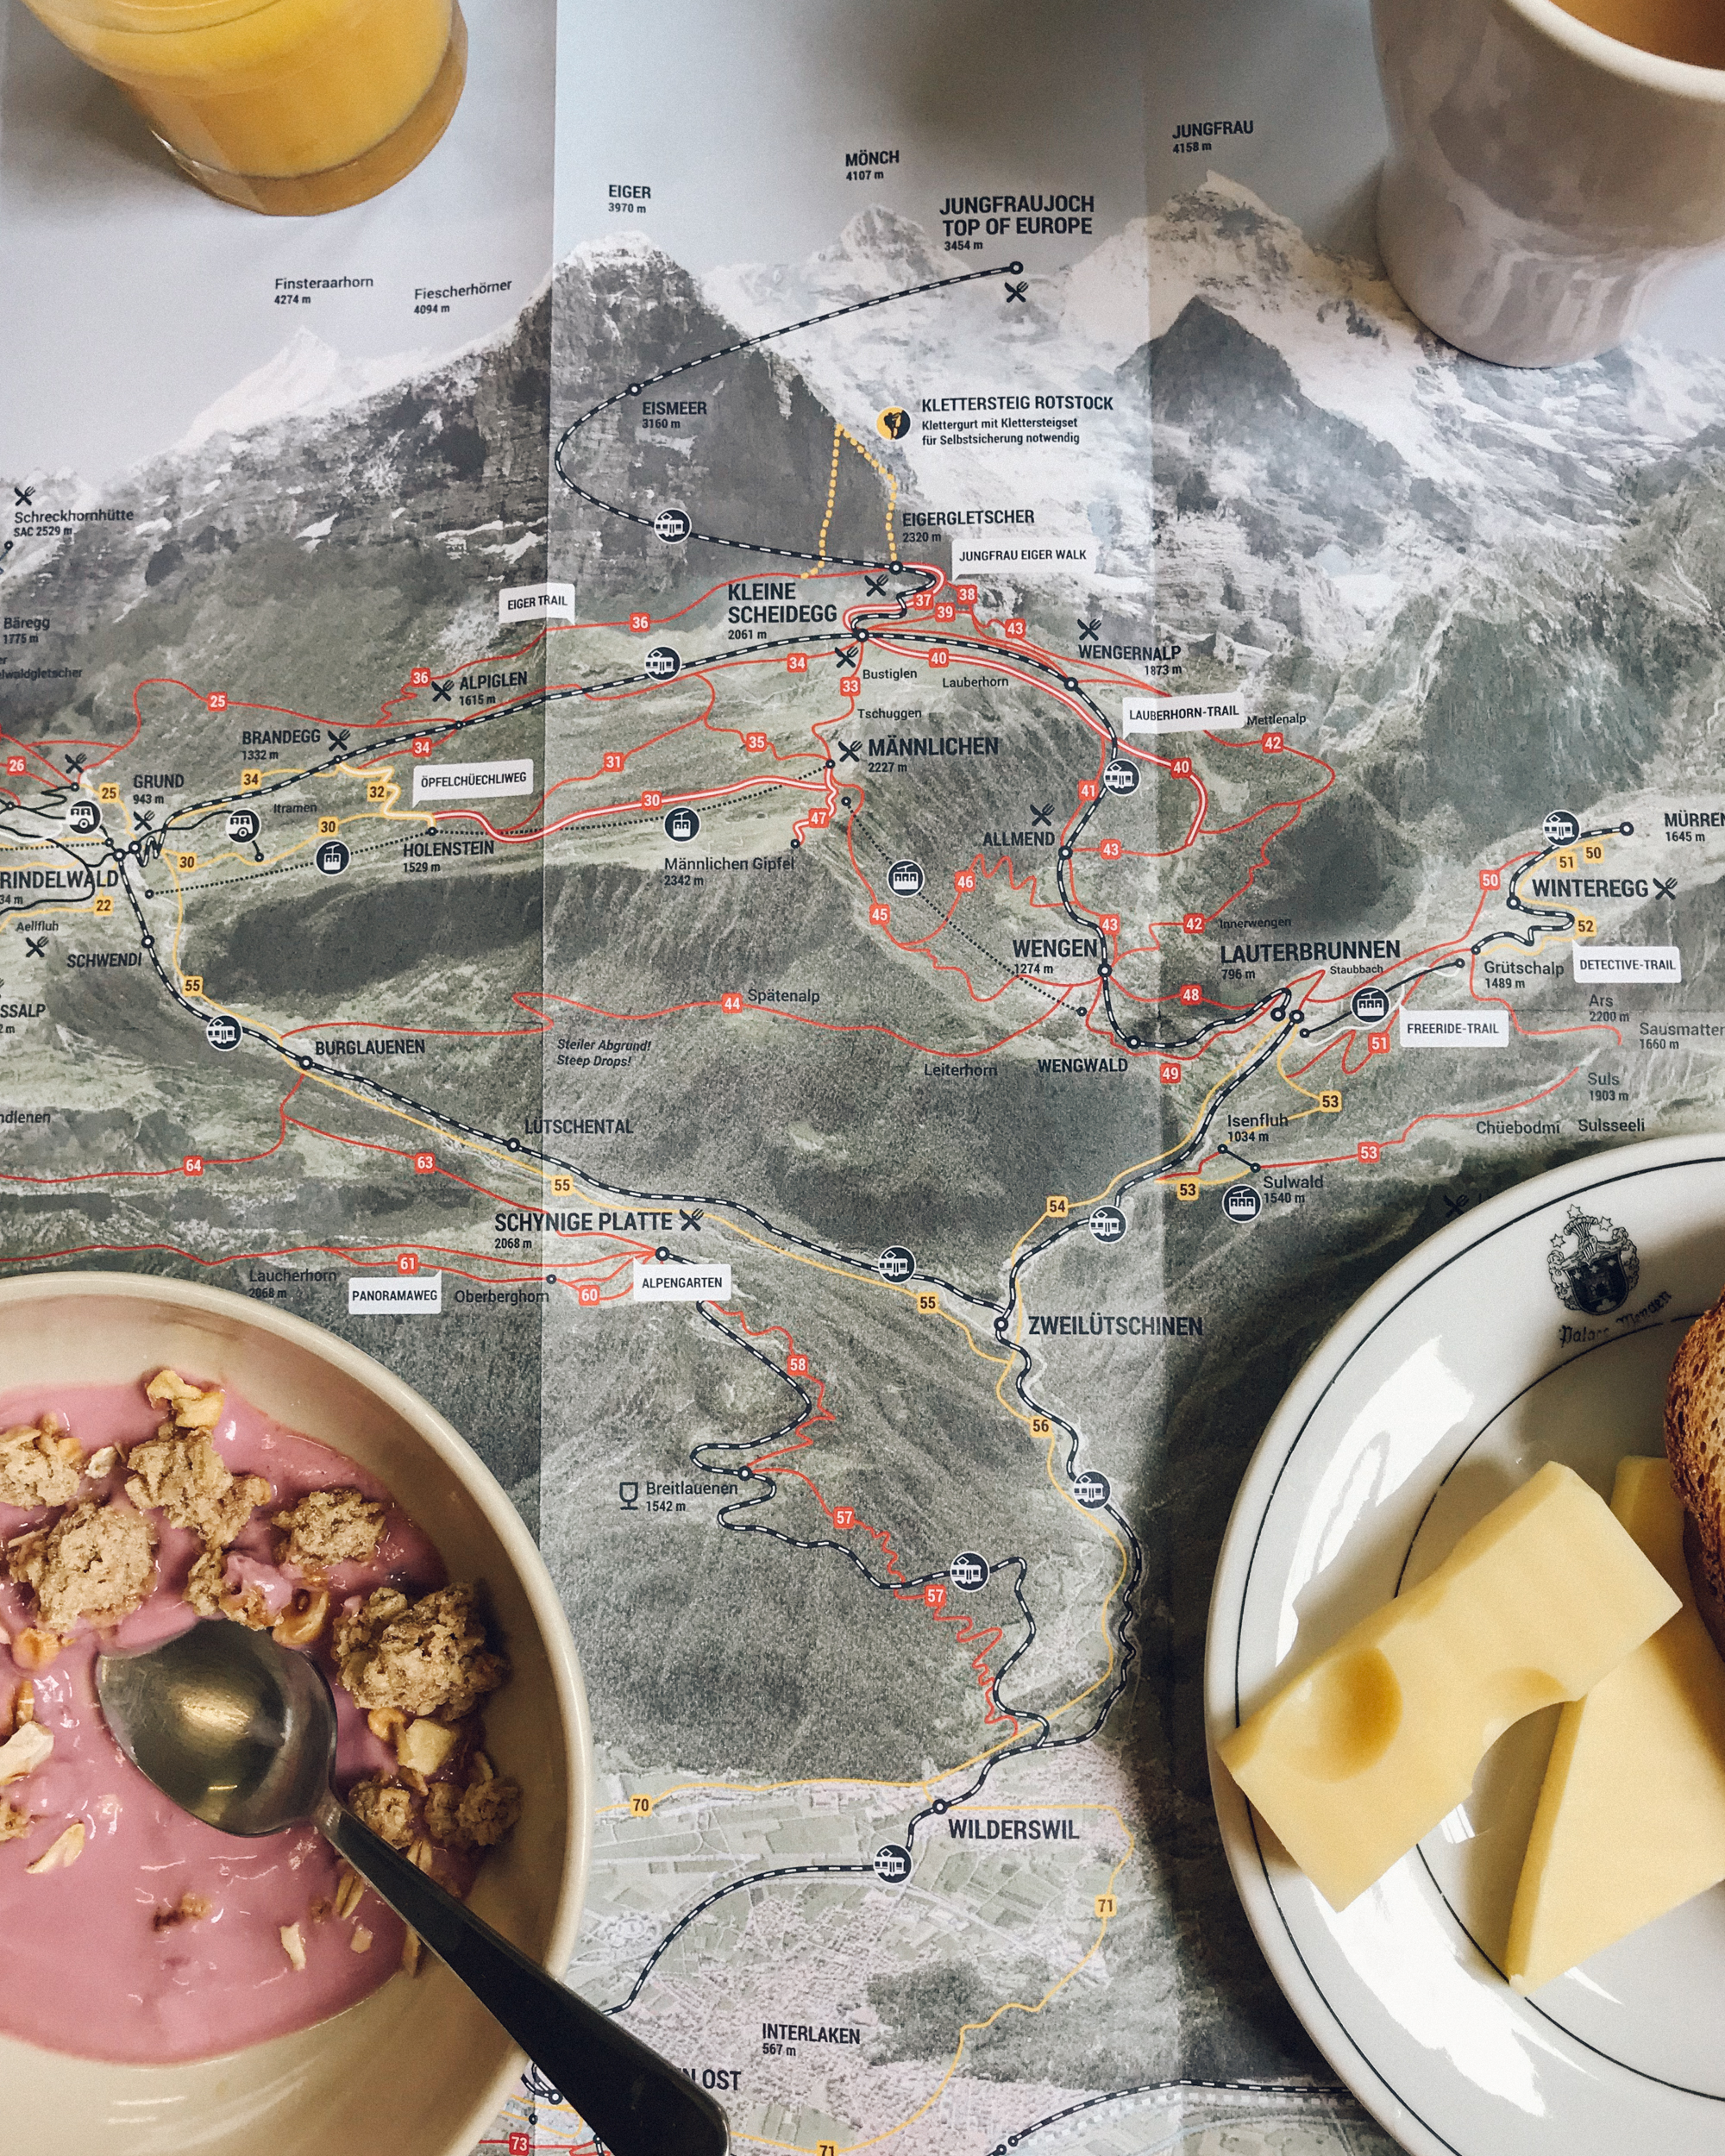 Route planning at my guesthouse in Stechelberg